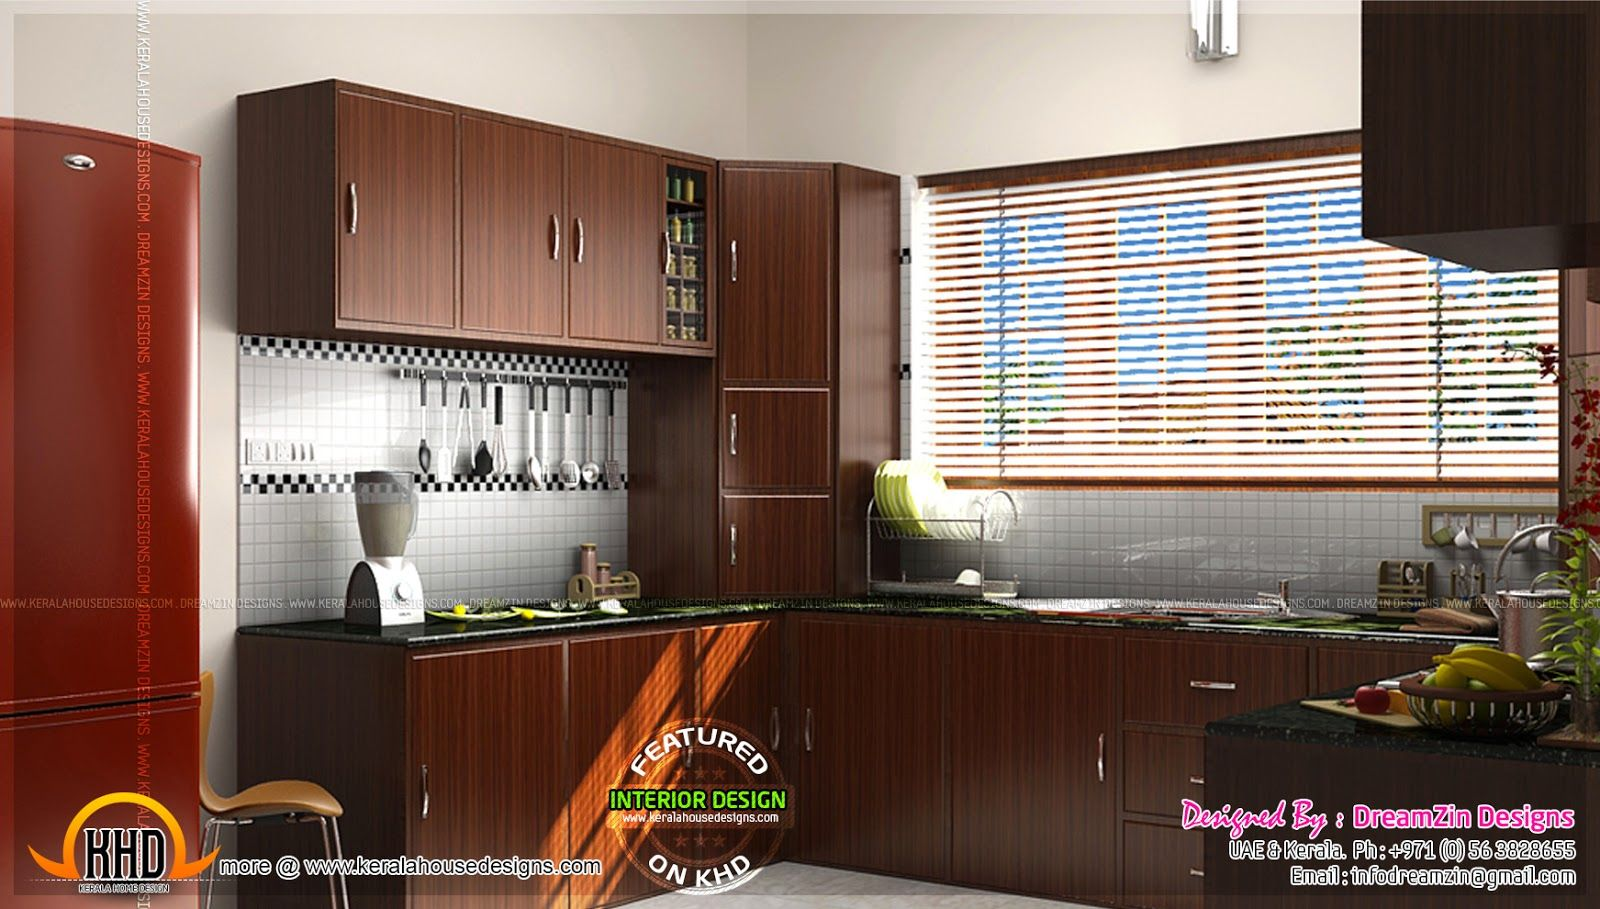 Kitchen design for indian style - Kerala Kitchen Interior Design Modular Kitchen Kerala Kerala Kitchen Kitchen Interior Views Ss Architects Cochin Home